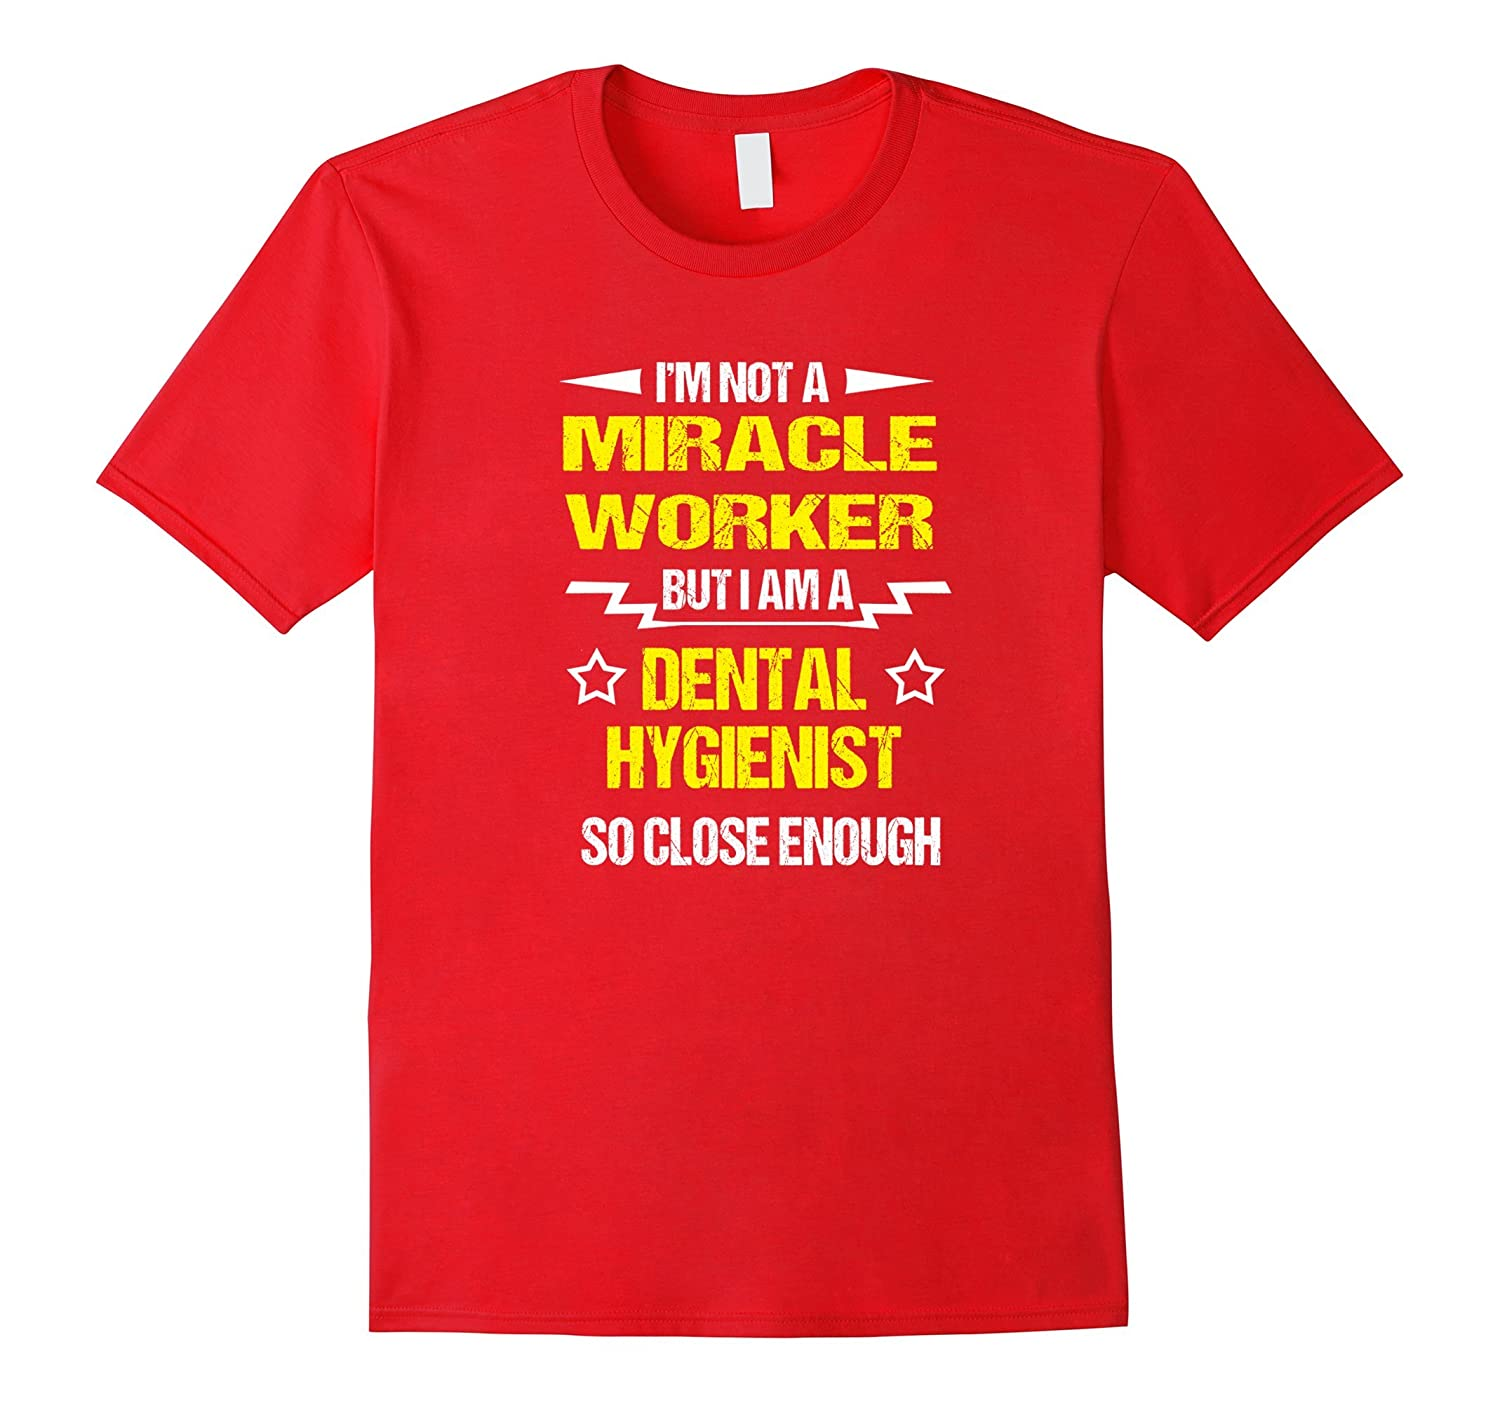 Not a Miracle but a Dental Hygienist Funny Job T-Shirt-TJ